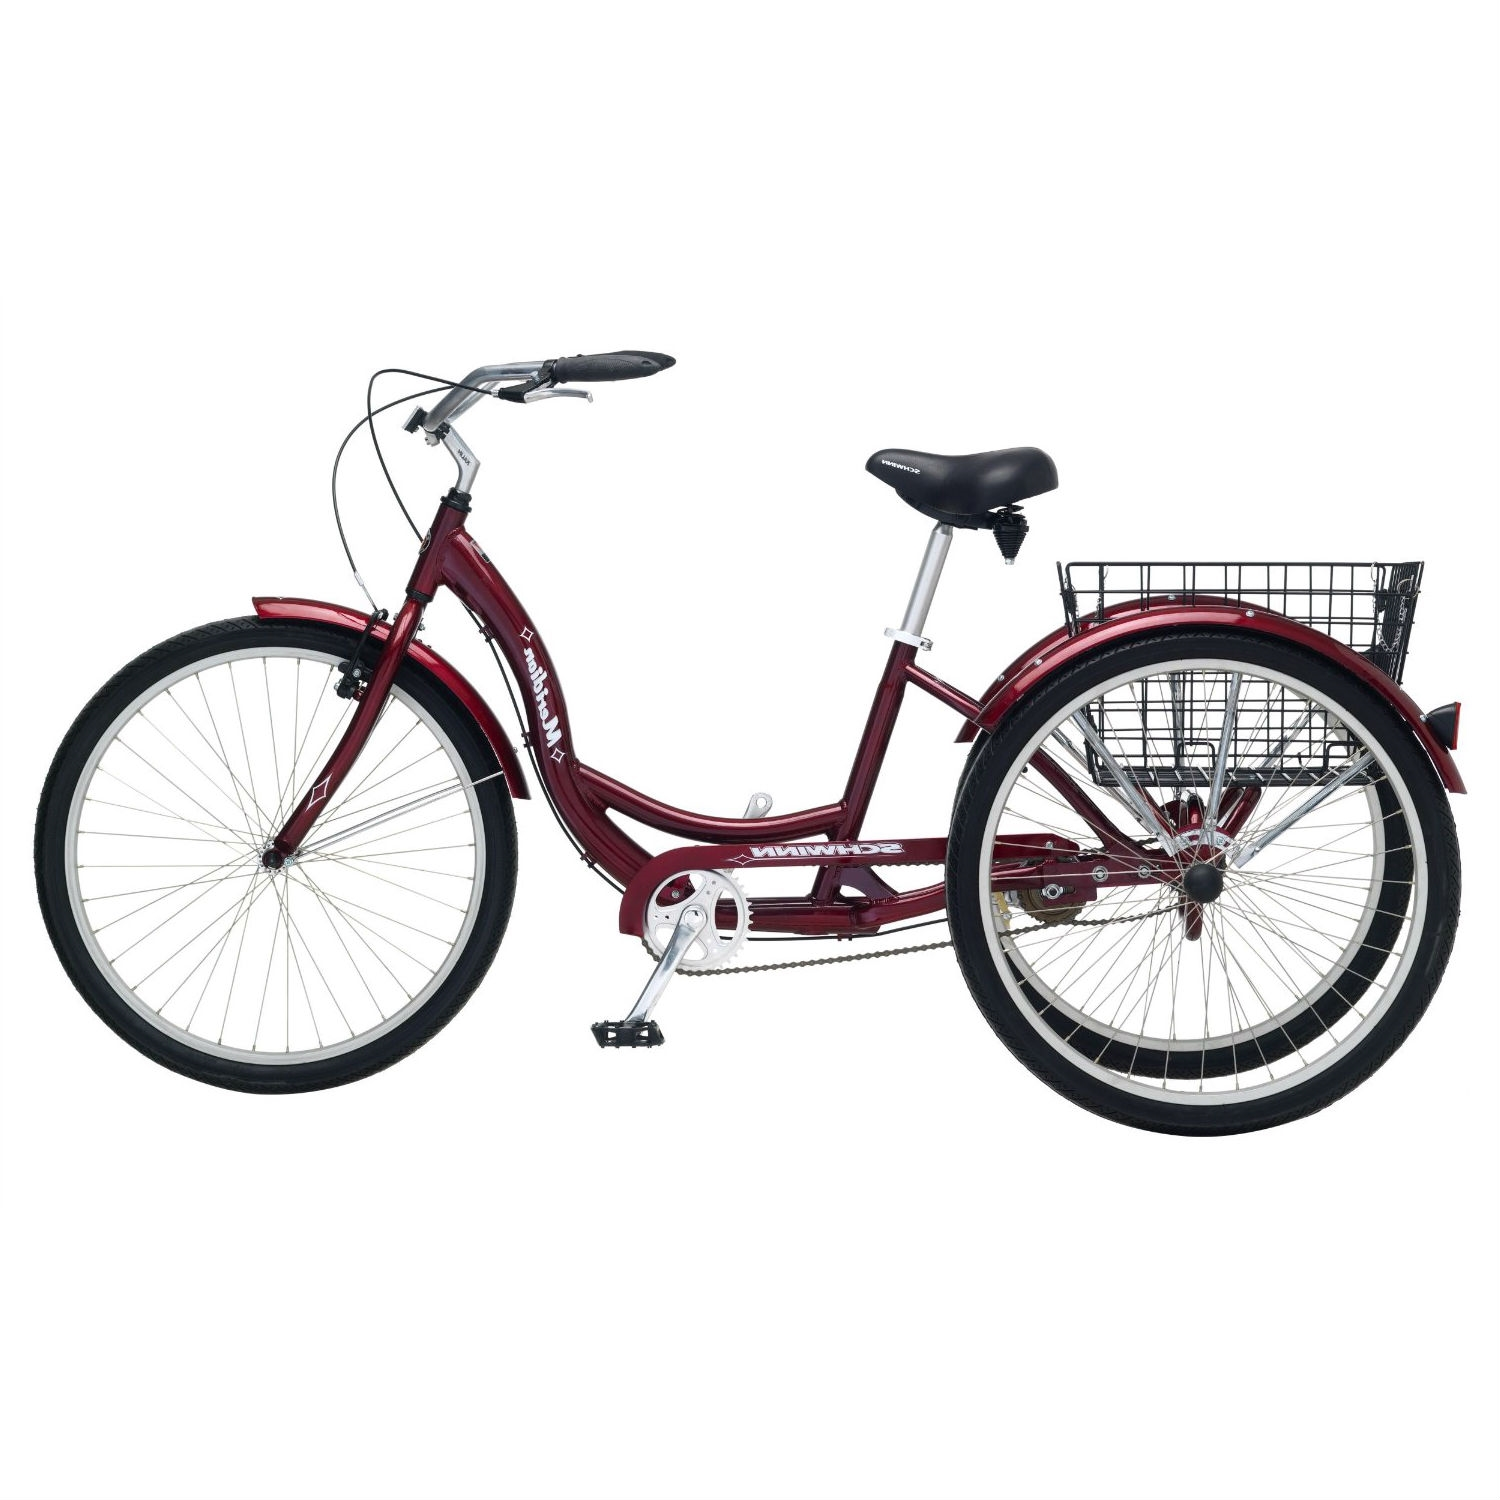 Black Cherry Single Speed Adult 3 Wheel Cruiser Bike